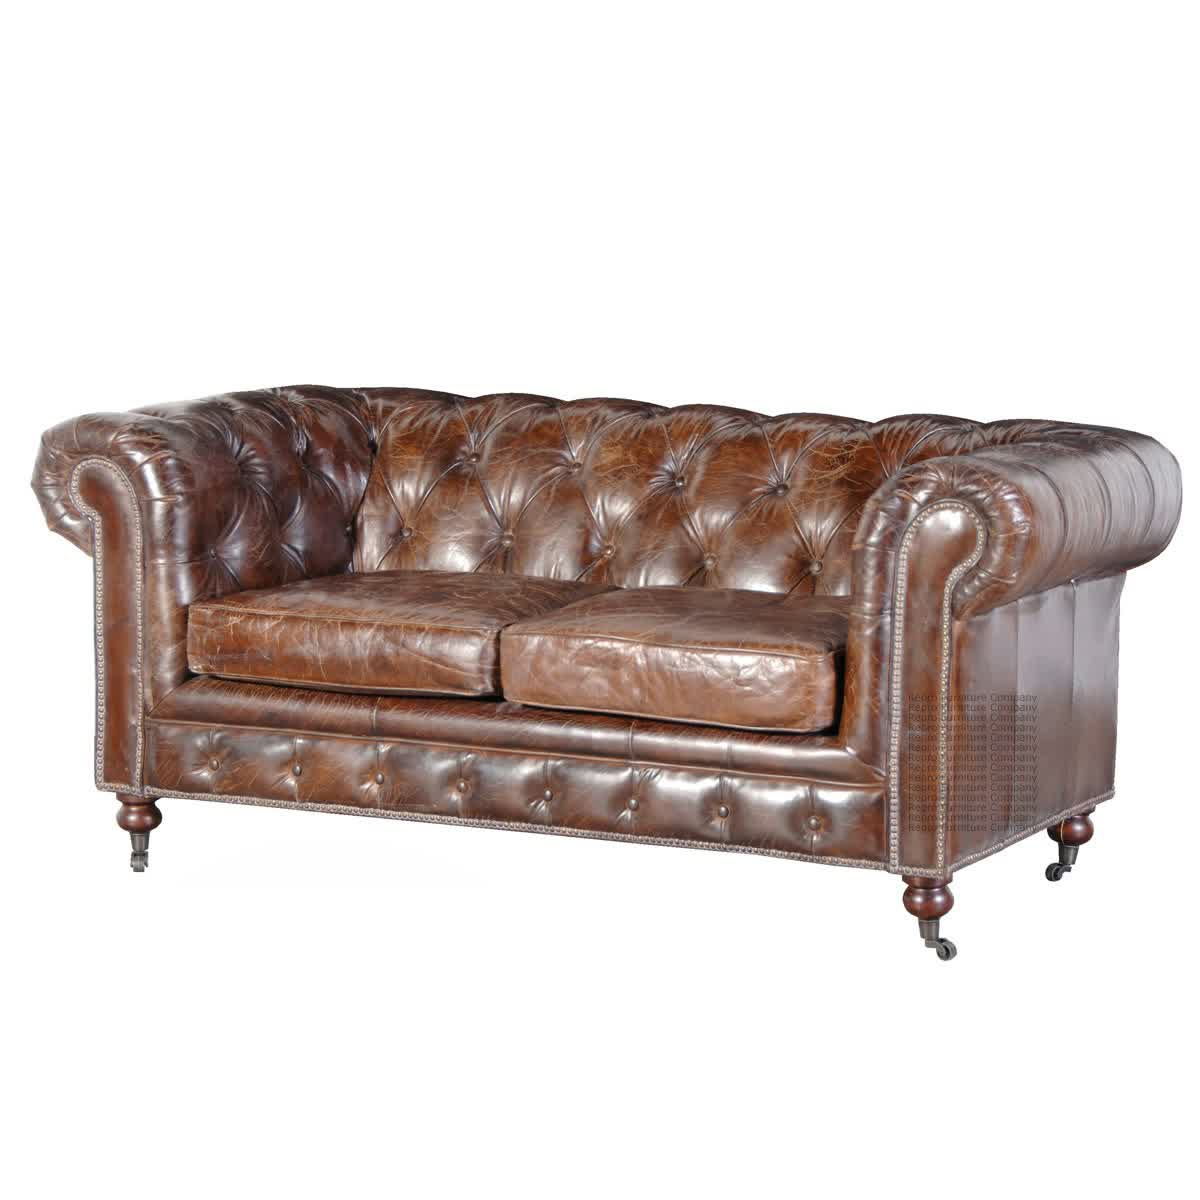 Image of: glamorous tufted leather sofa